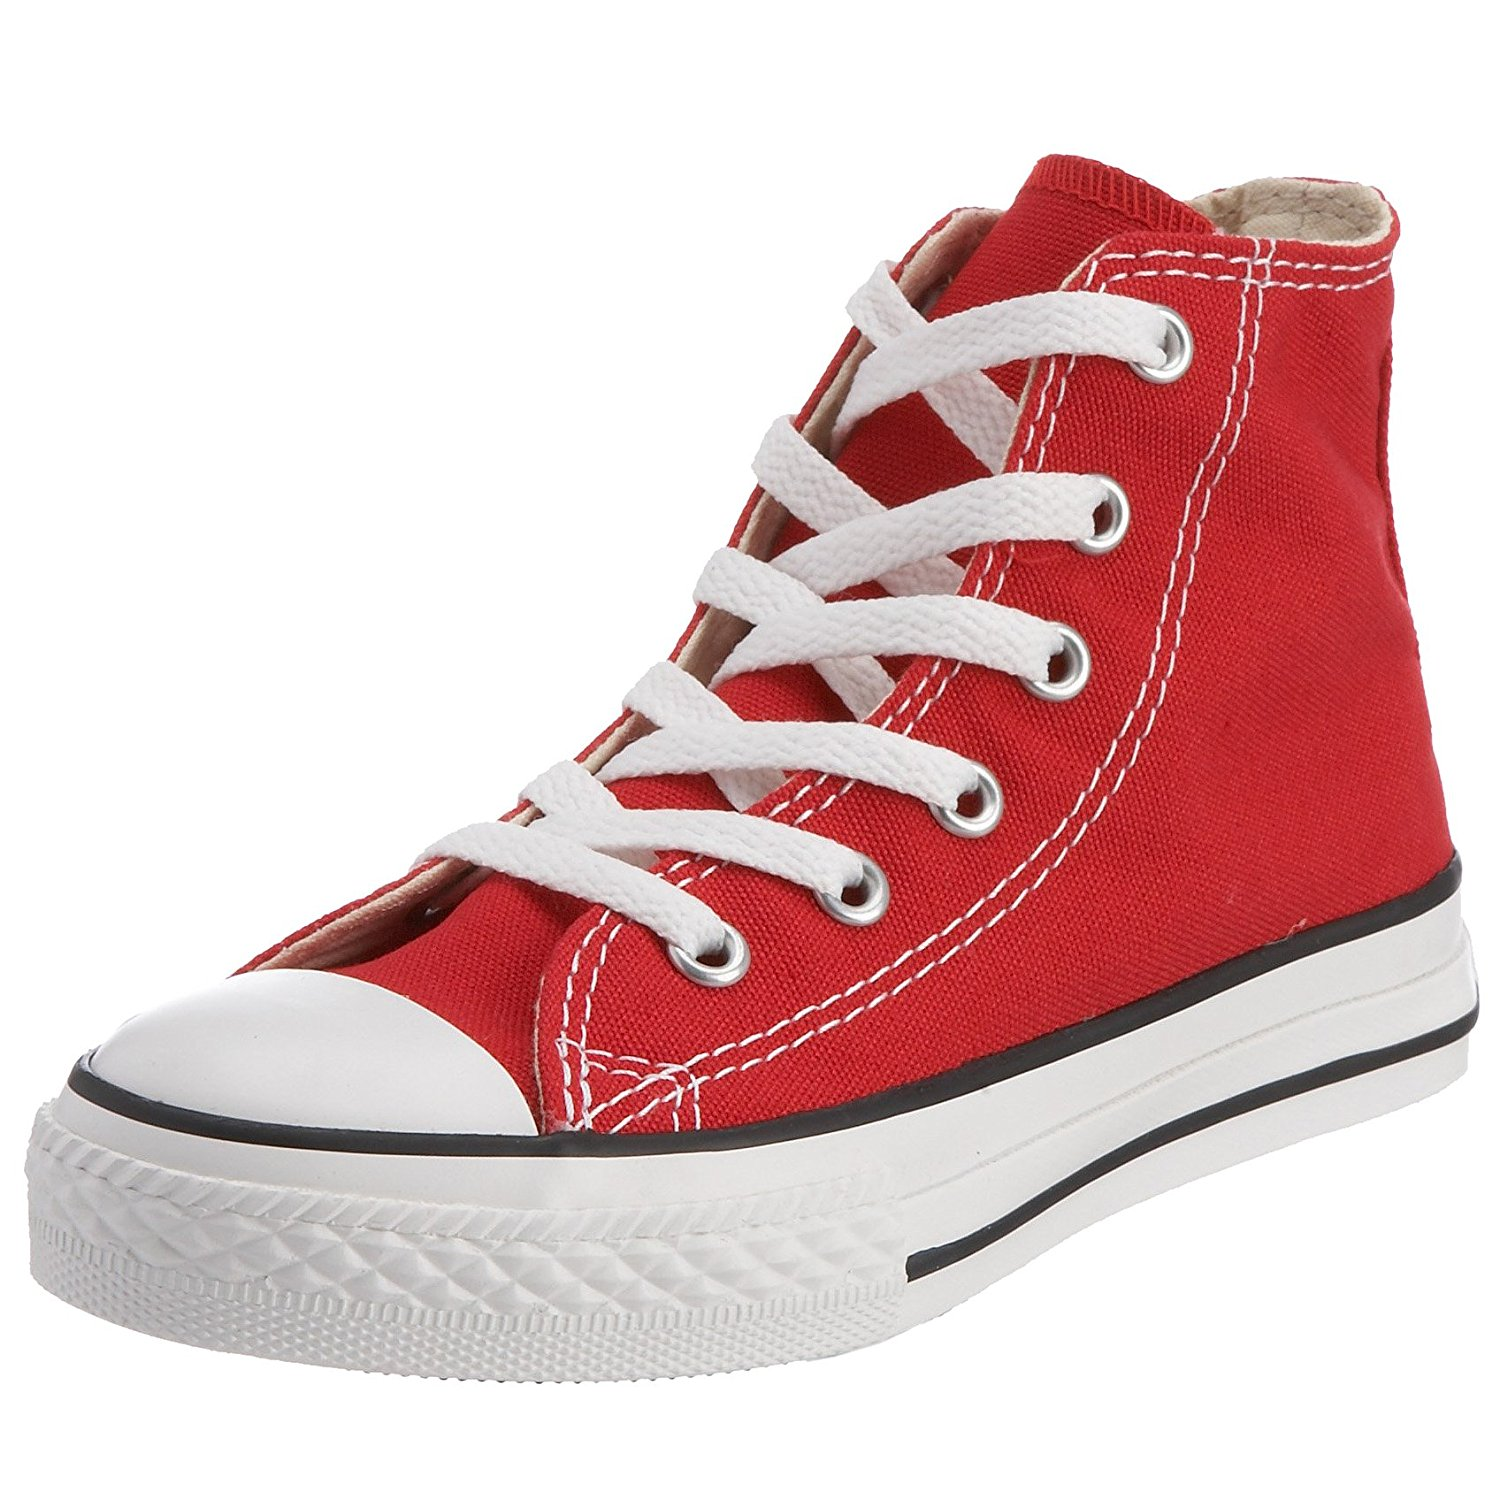 Details Top Converse Kids 3j232 Star About All High Taylor Chuck nPXN8Okw0